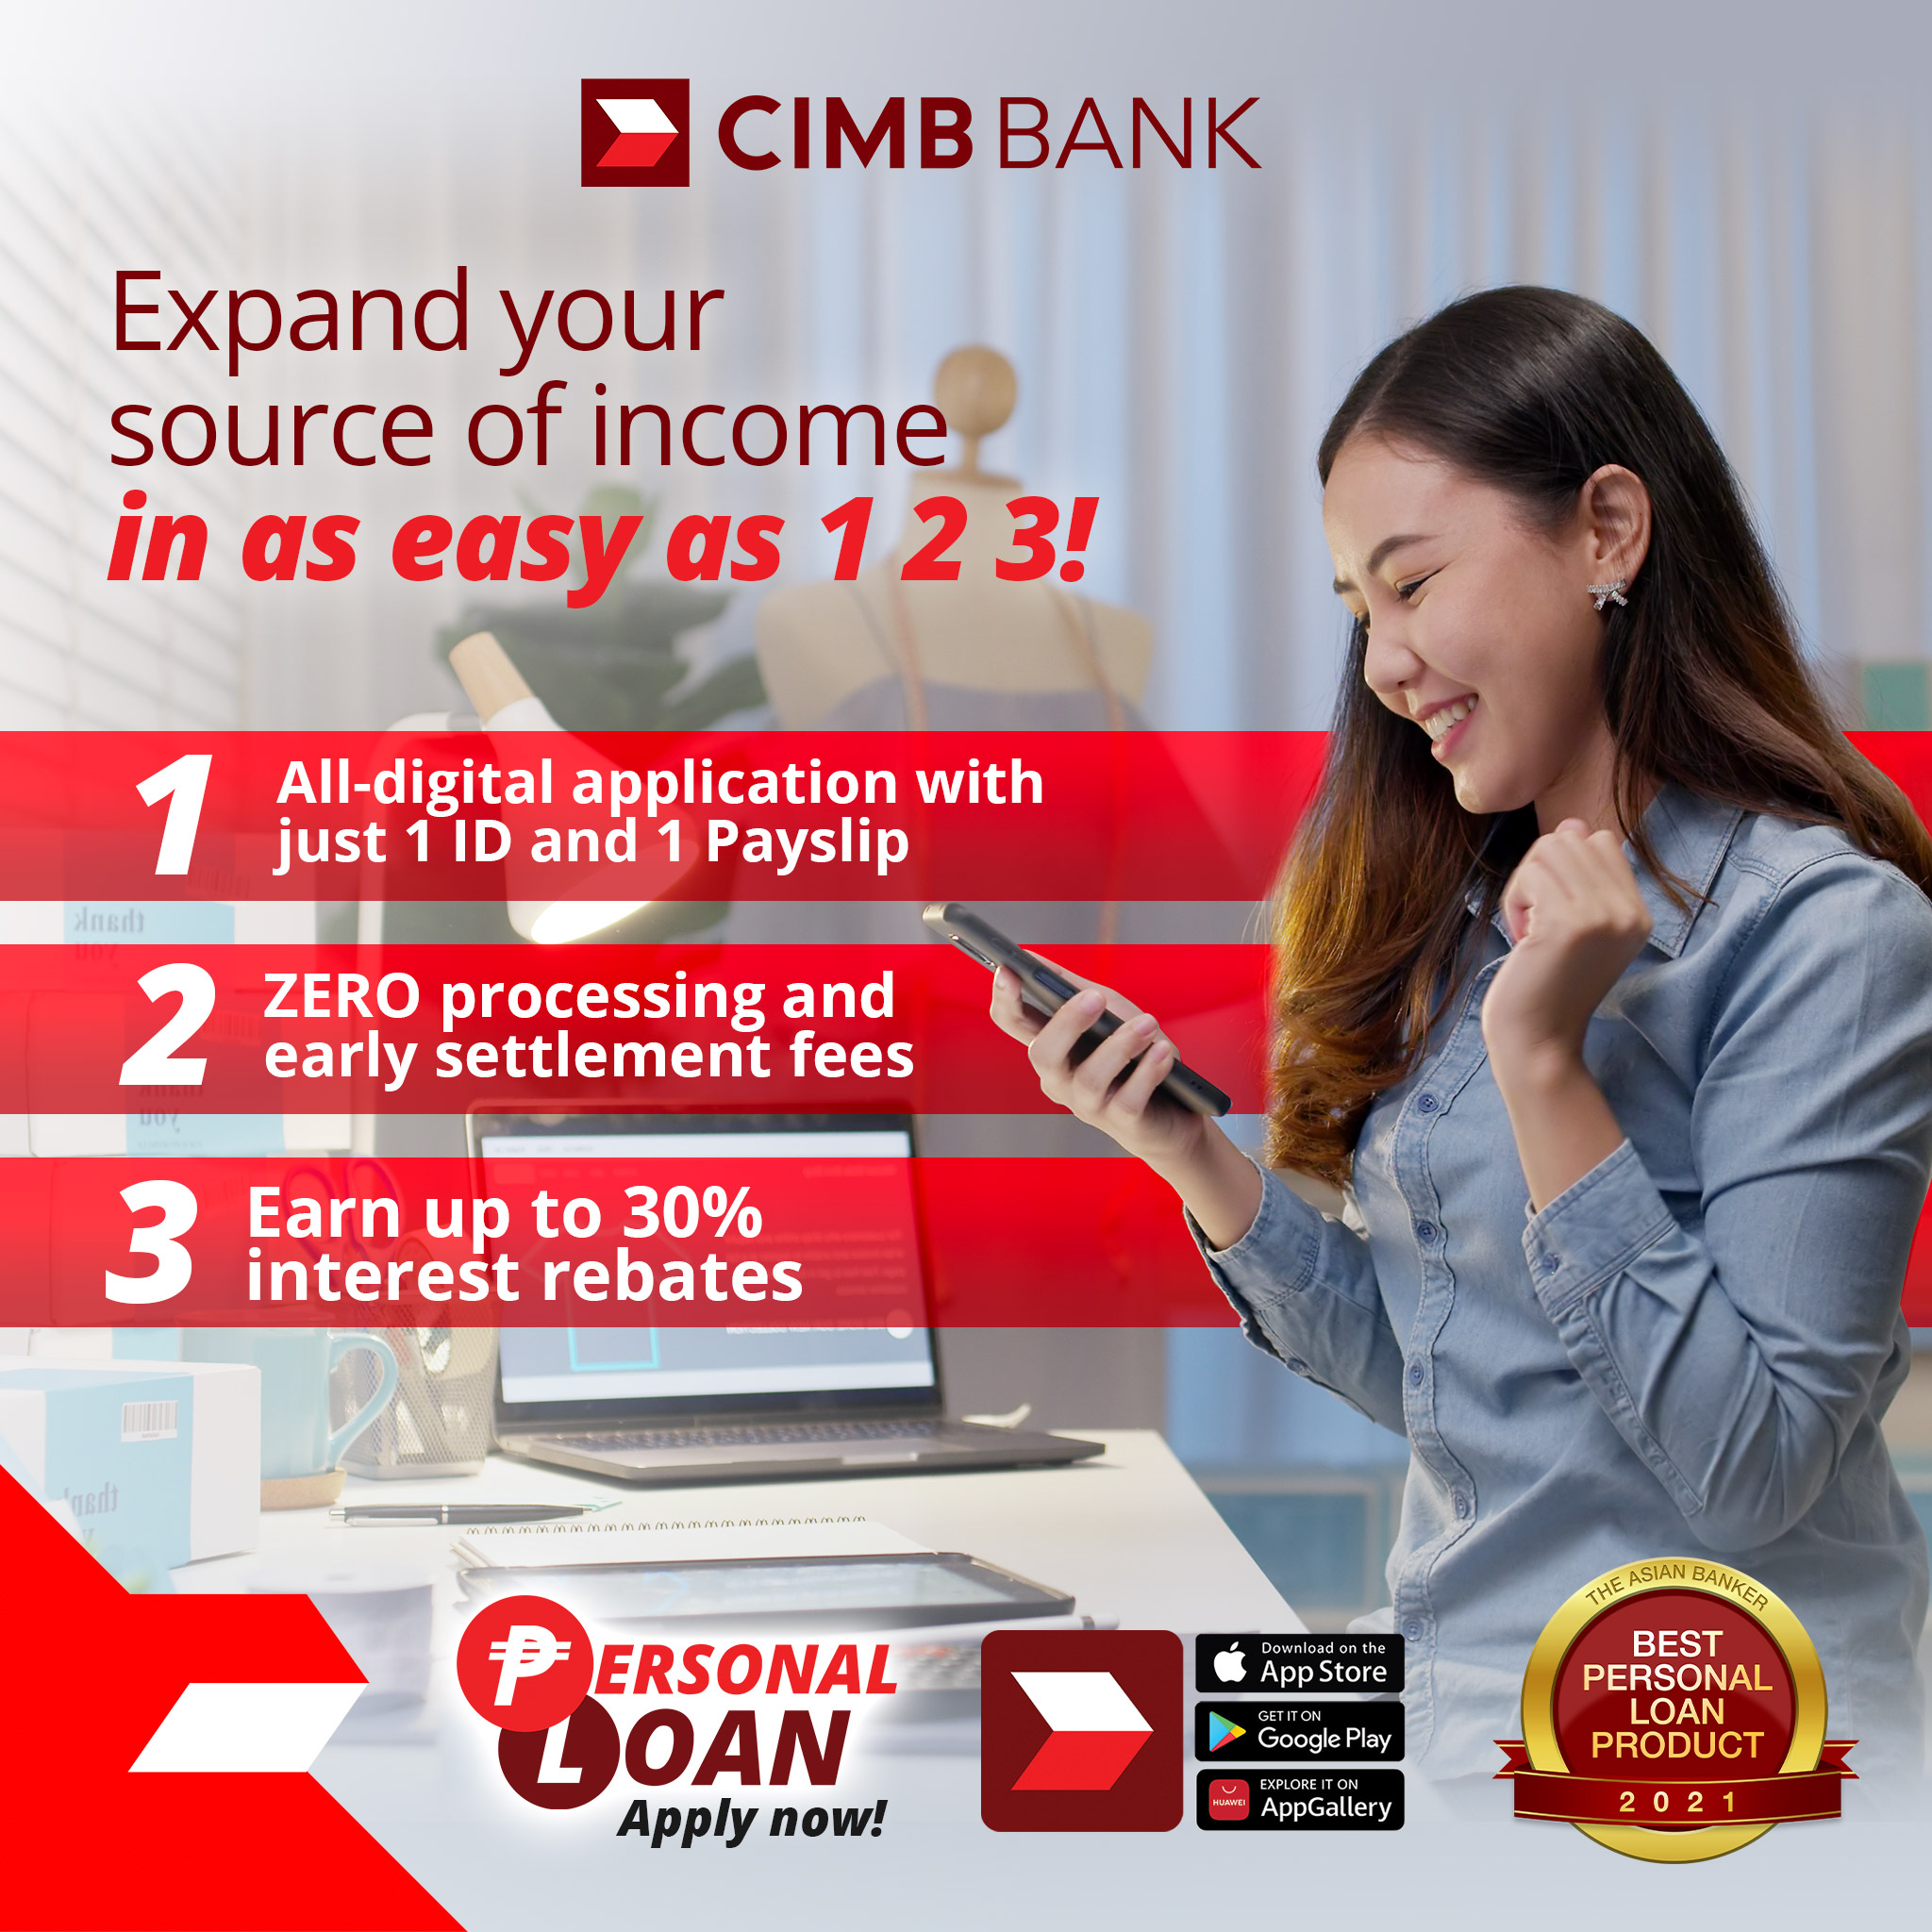 how to apply for a CIMB personal loan - FAQs